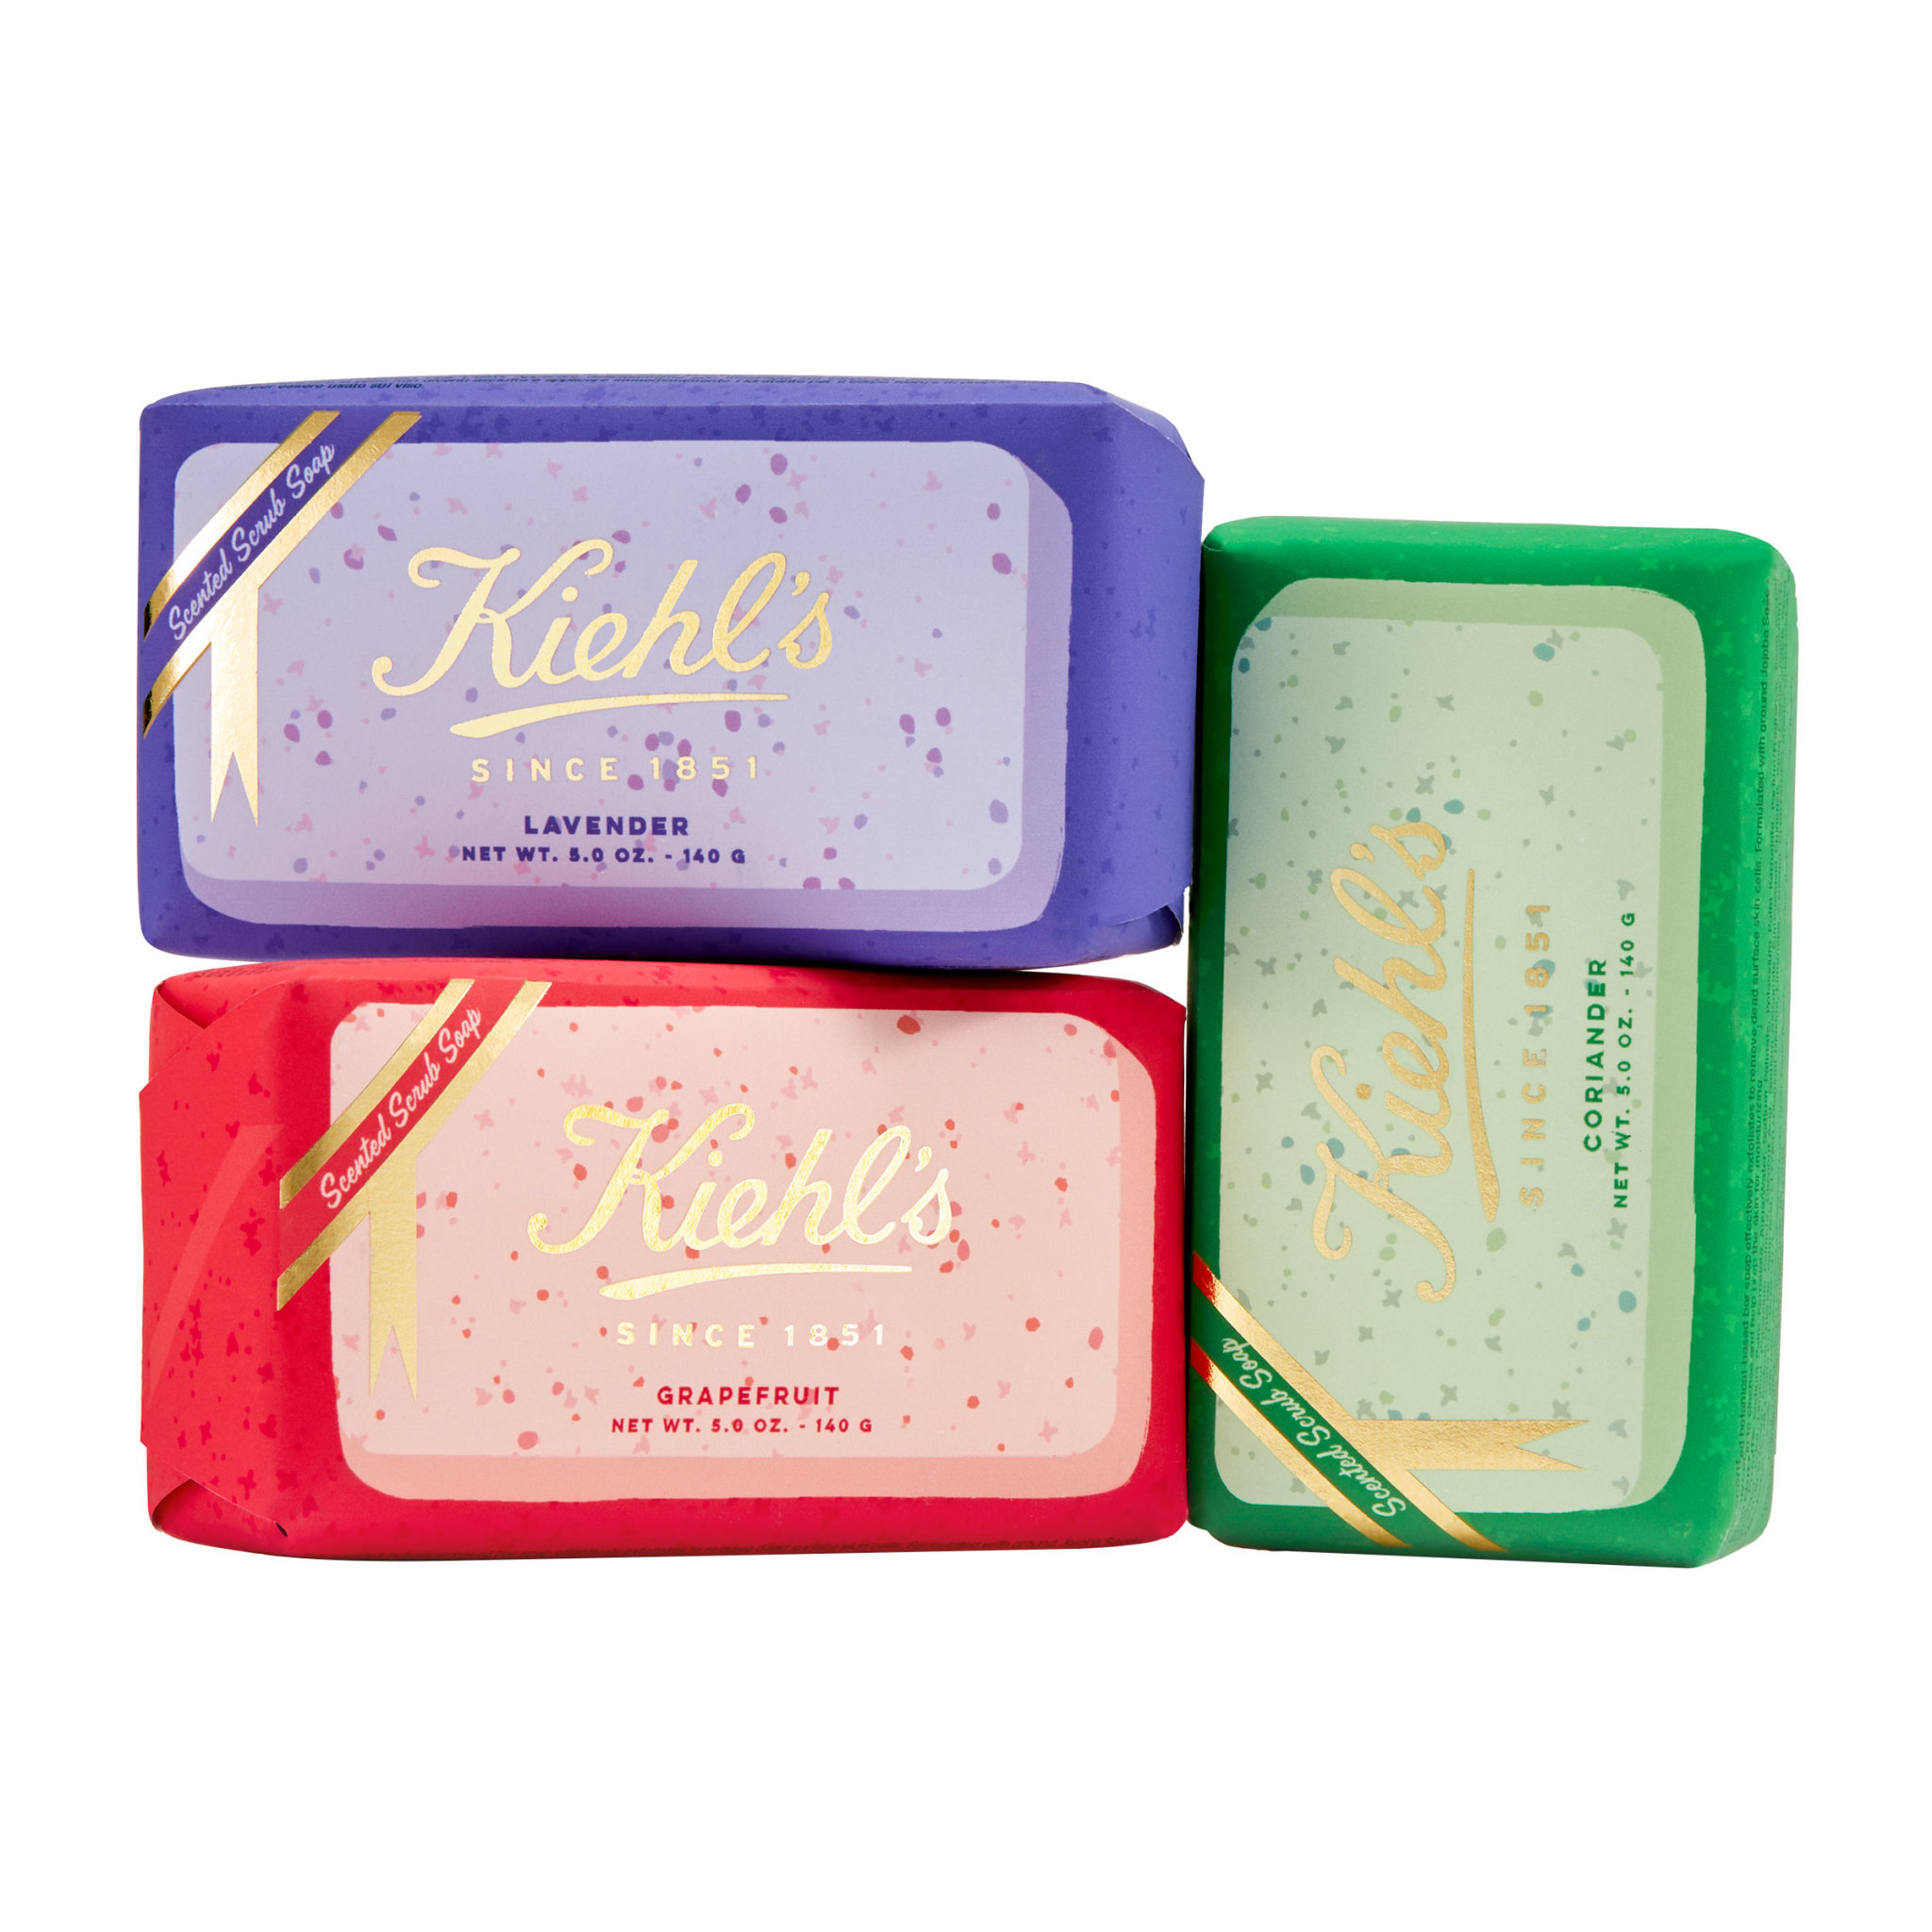 Exfoliating Body Scrub Soap Limited Edition